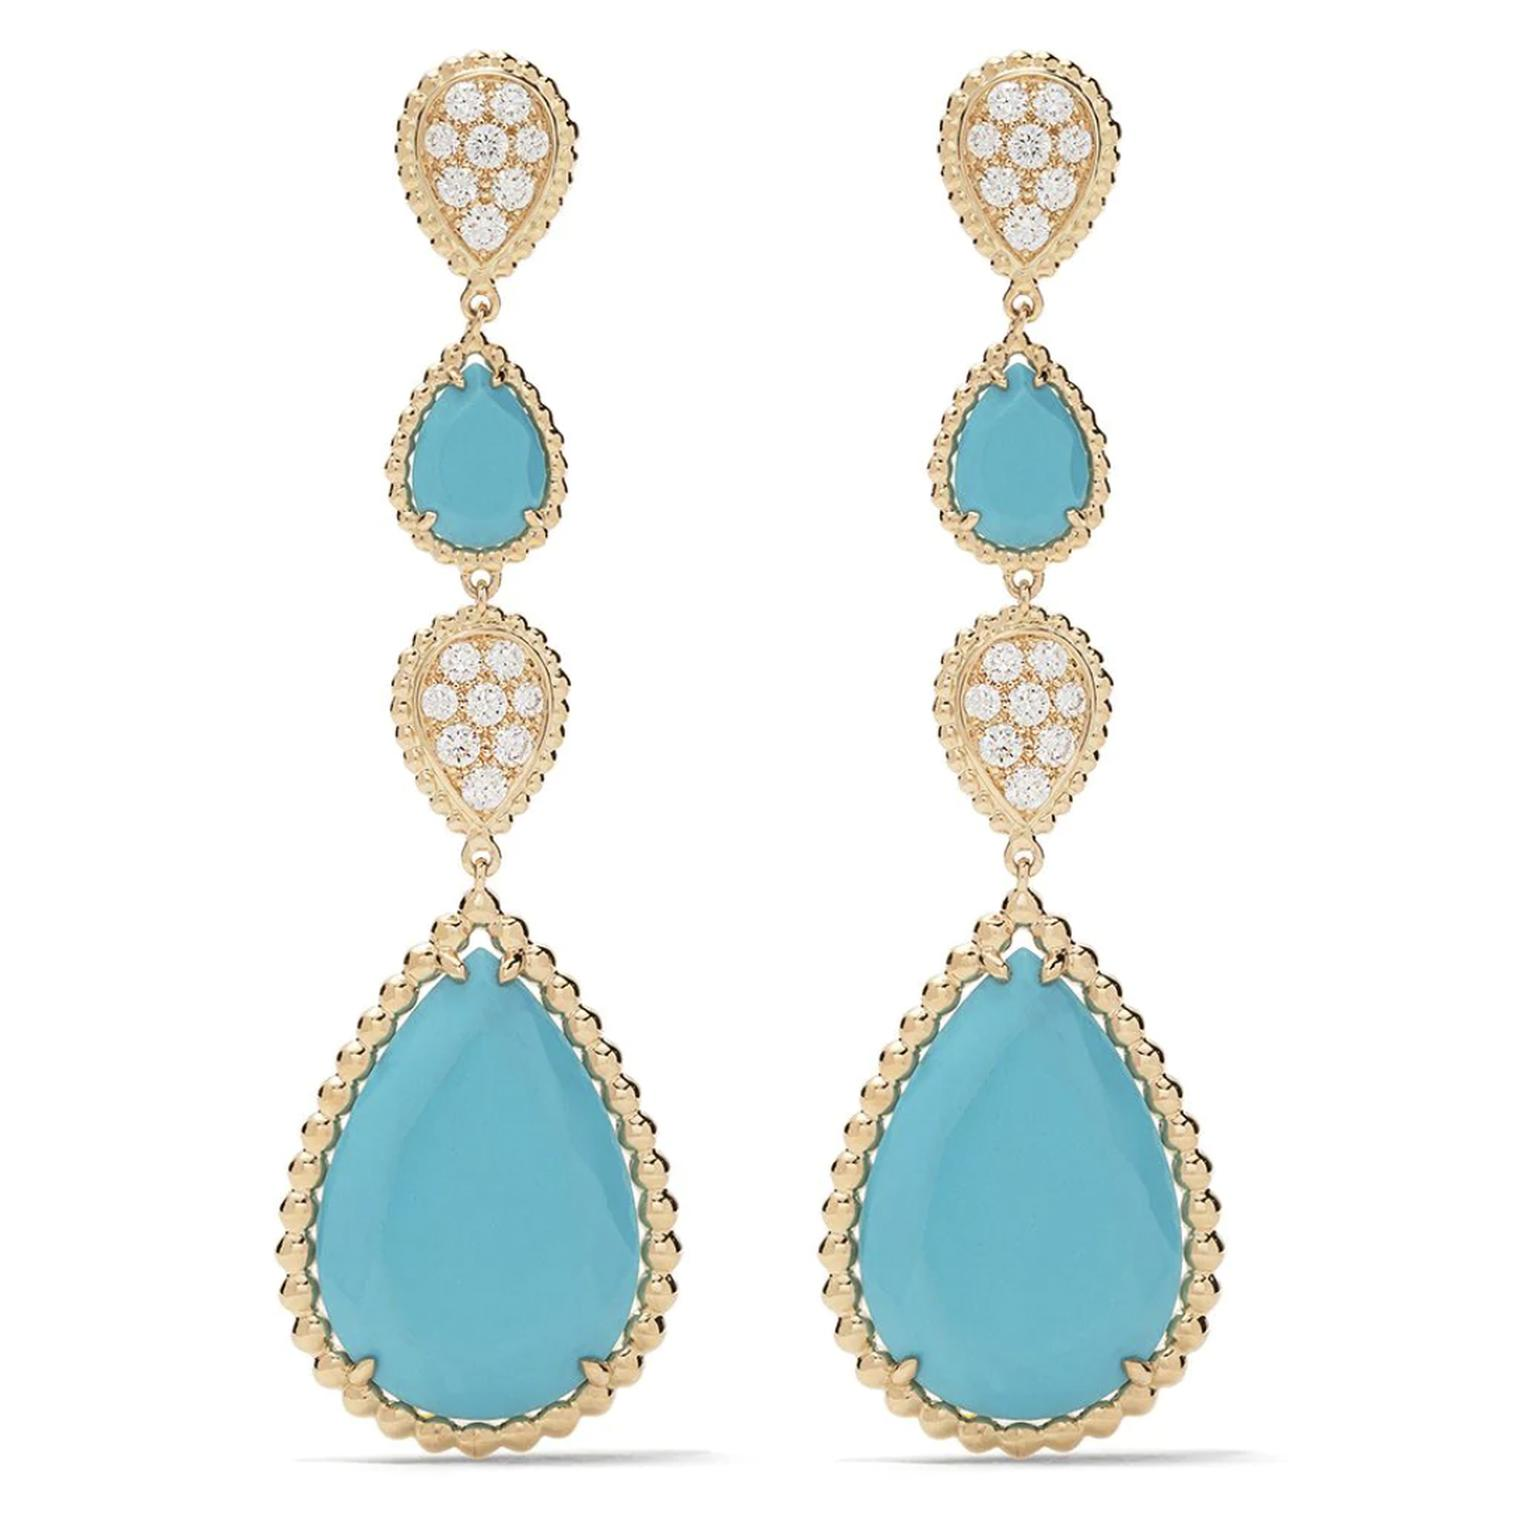 Turquoise earrings by Boucheron